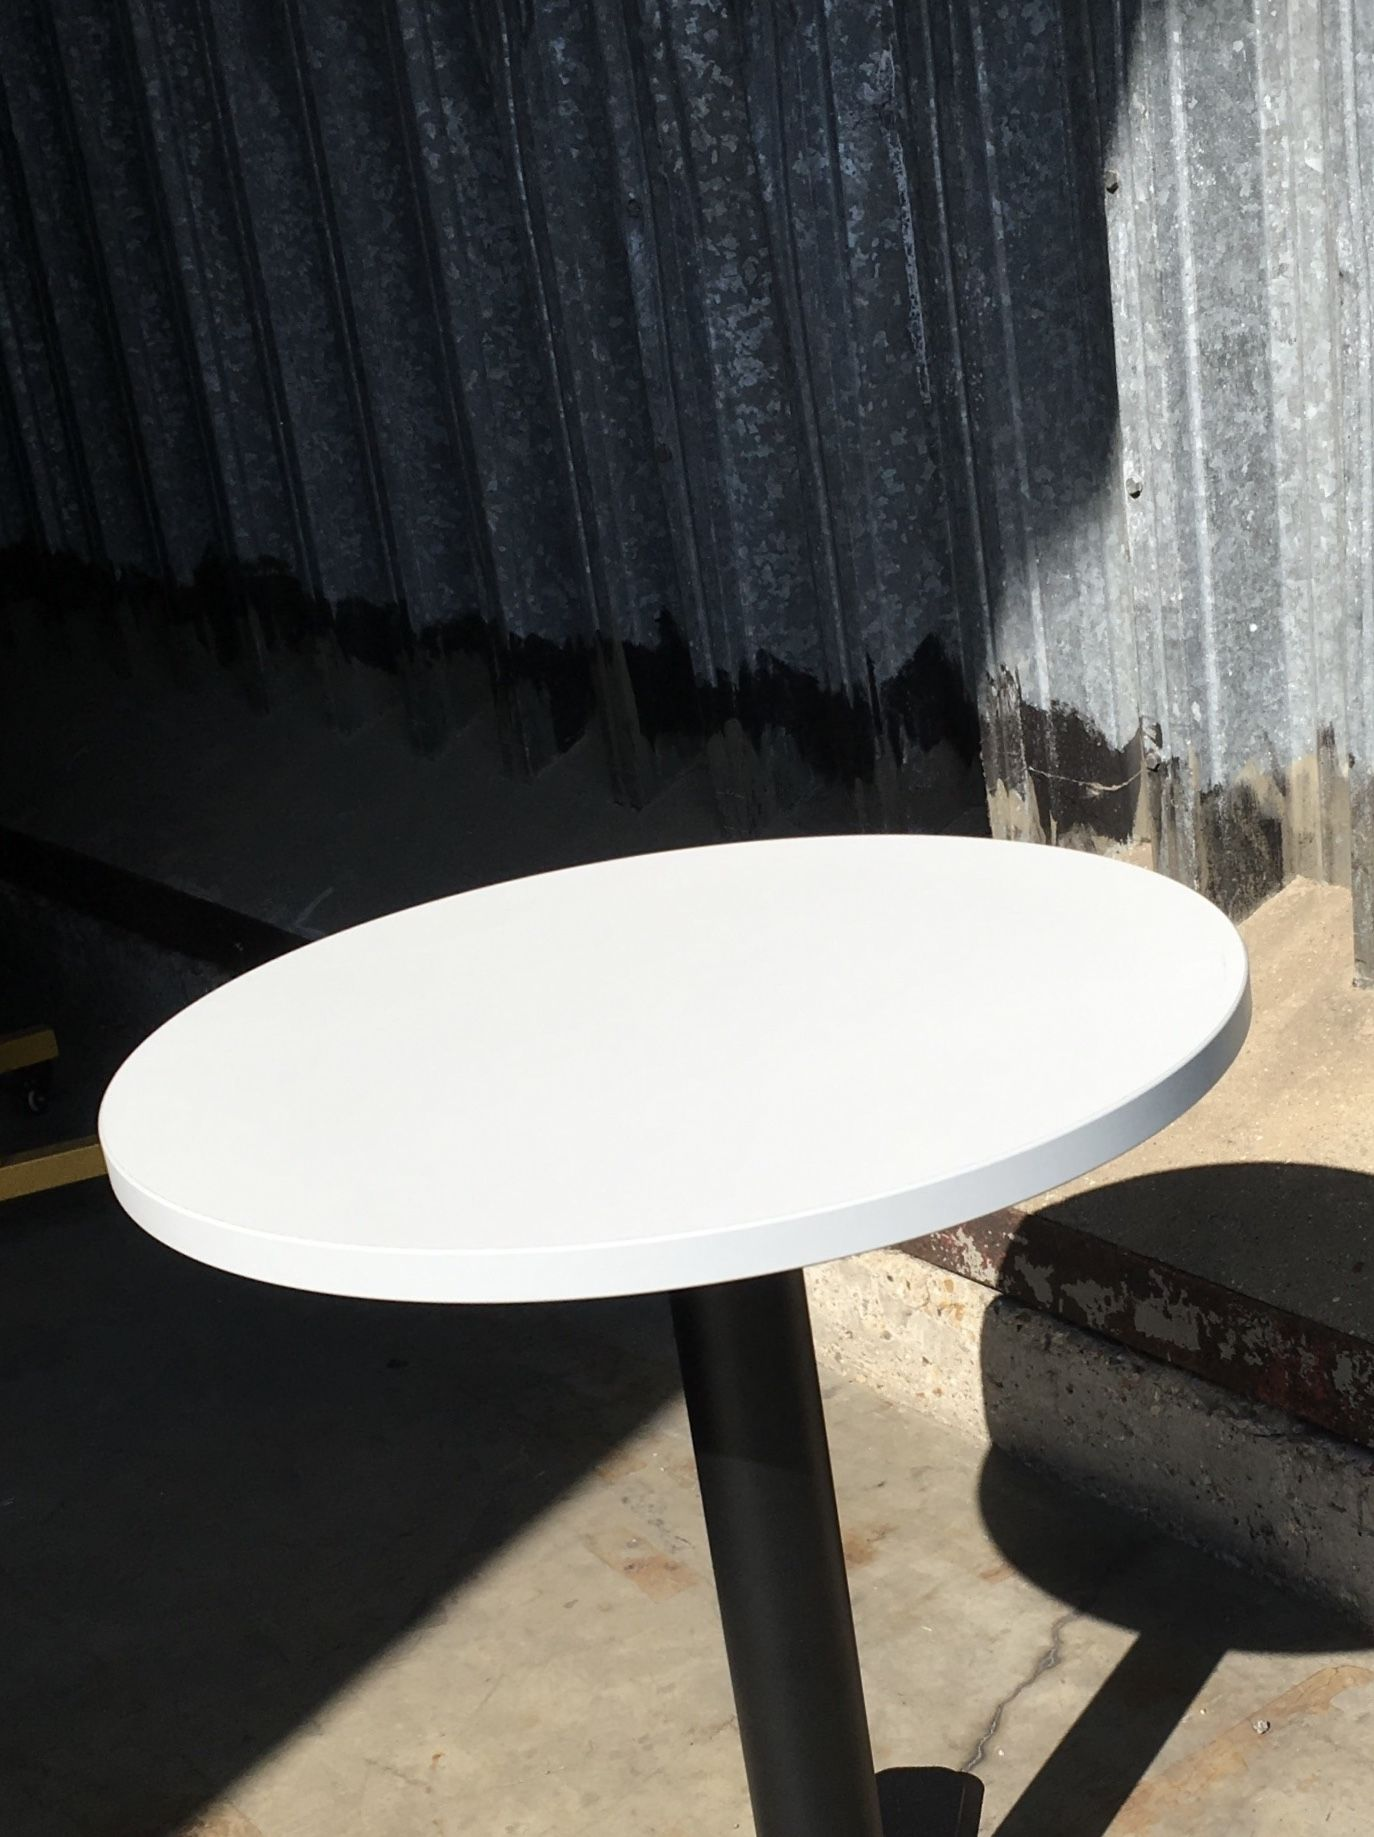 HPL laminate pvc edge contract sizes from stock | Table Tops